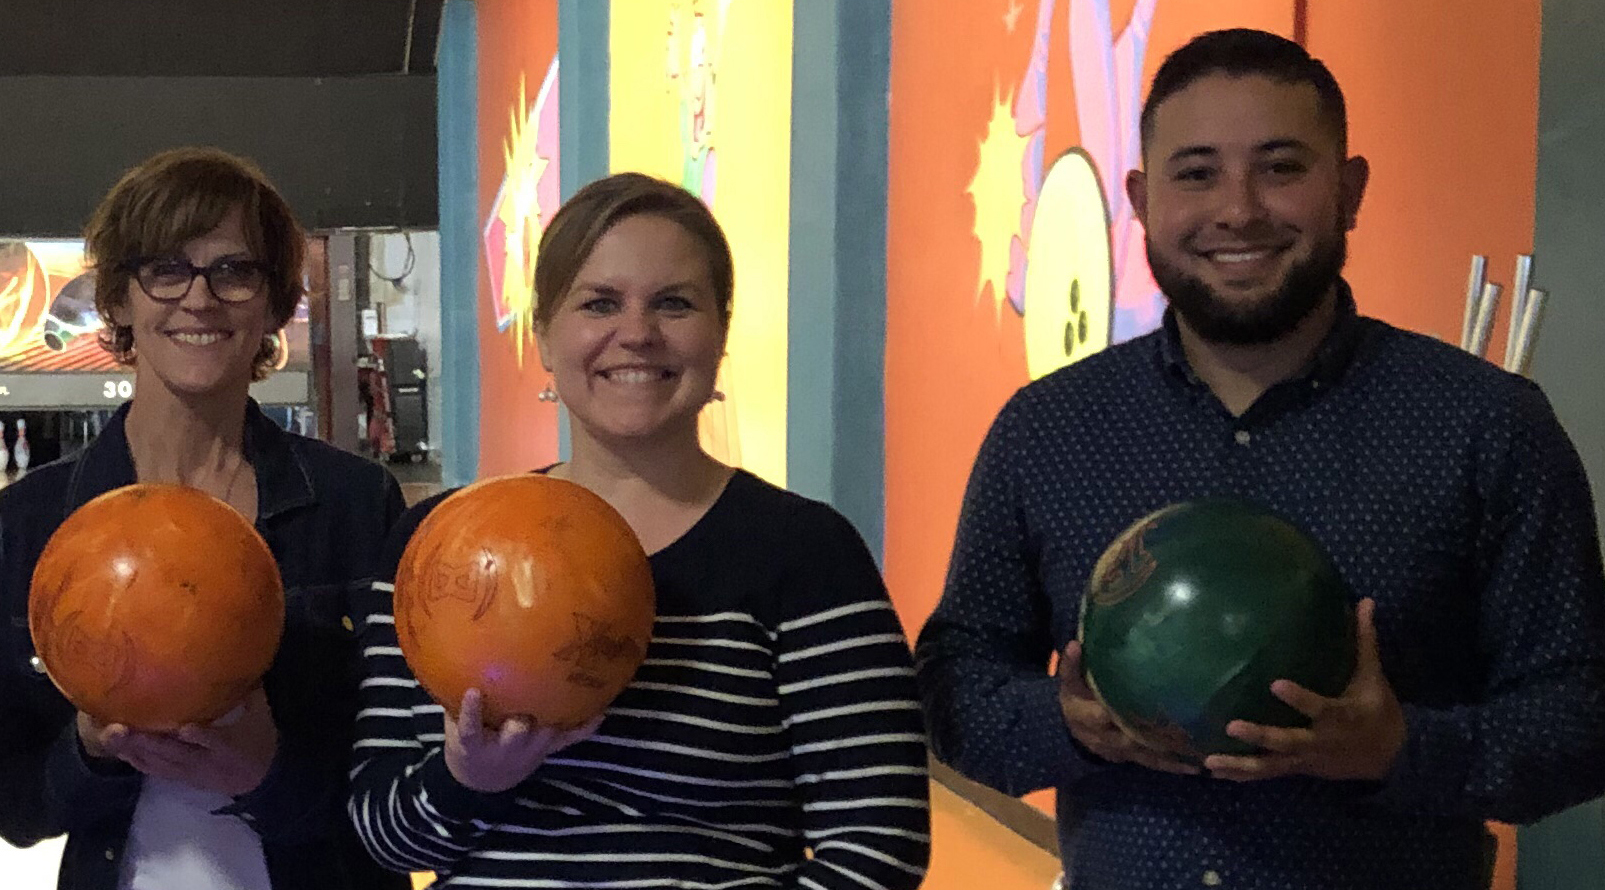 Employee event to see who is the best bowler